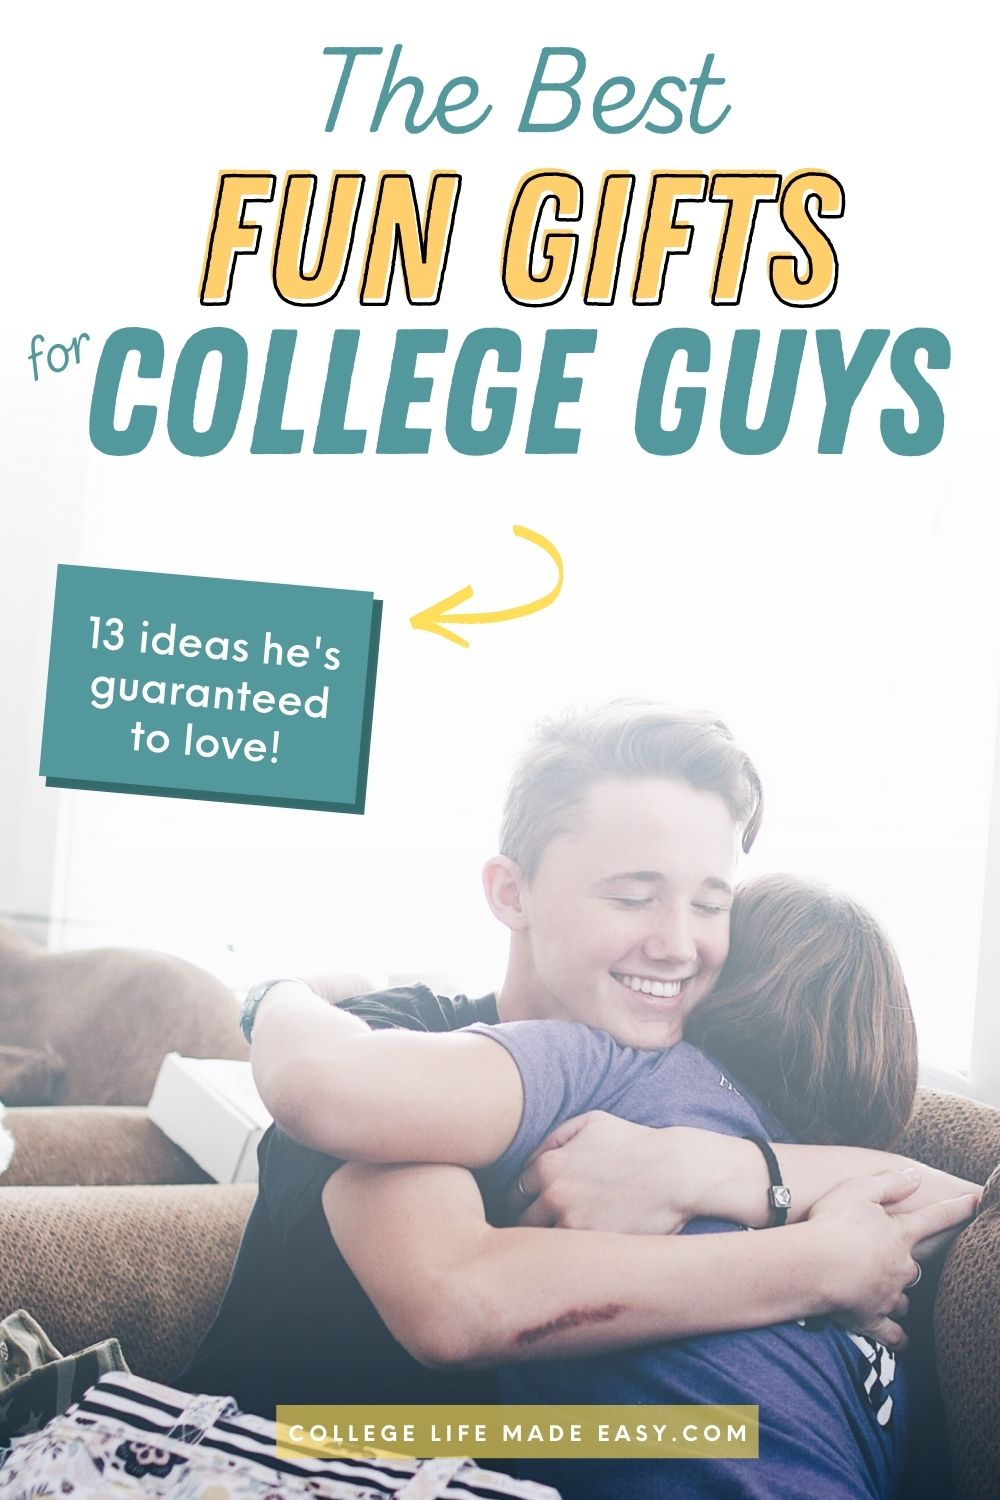 the best fun gifts for college guys - Pinterest infographic